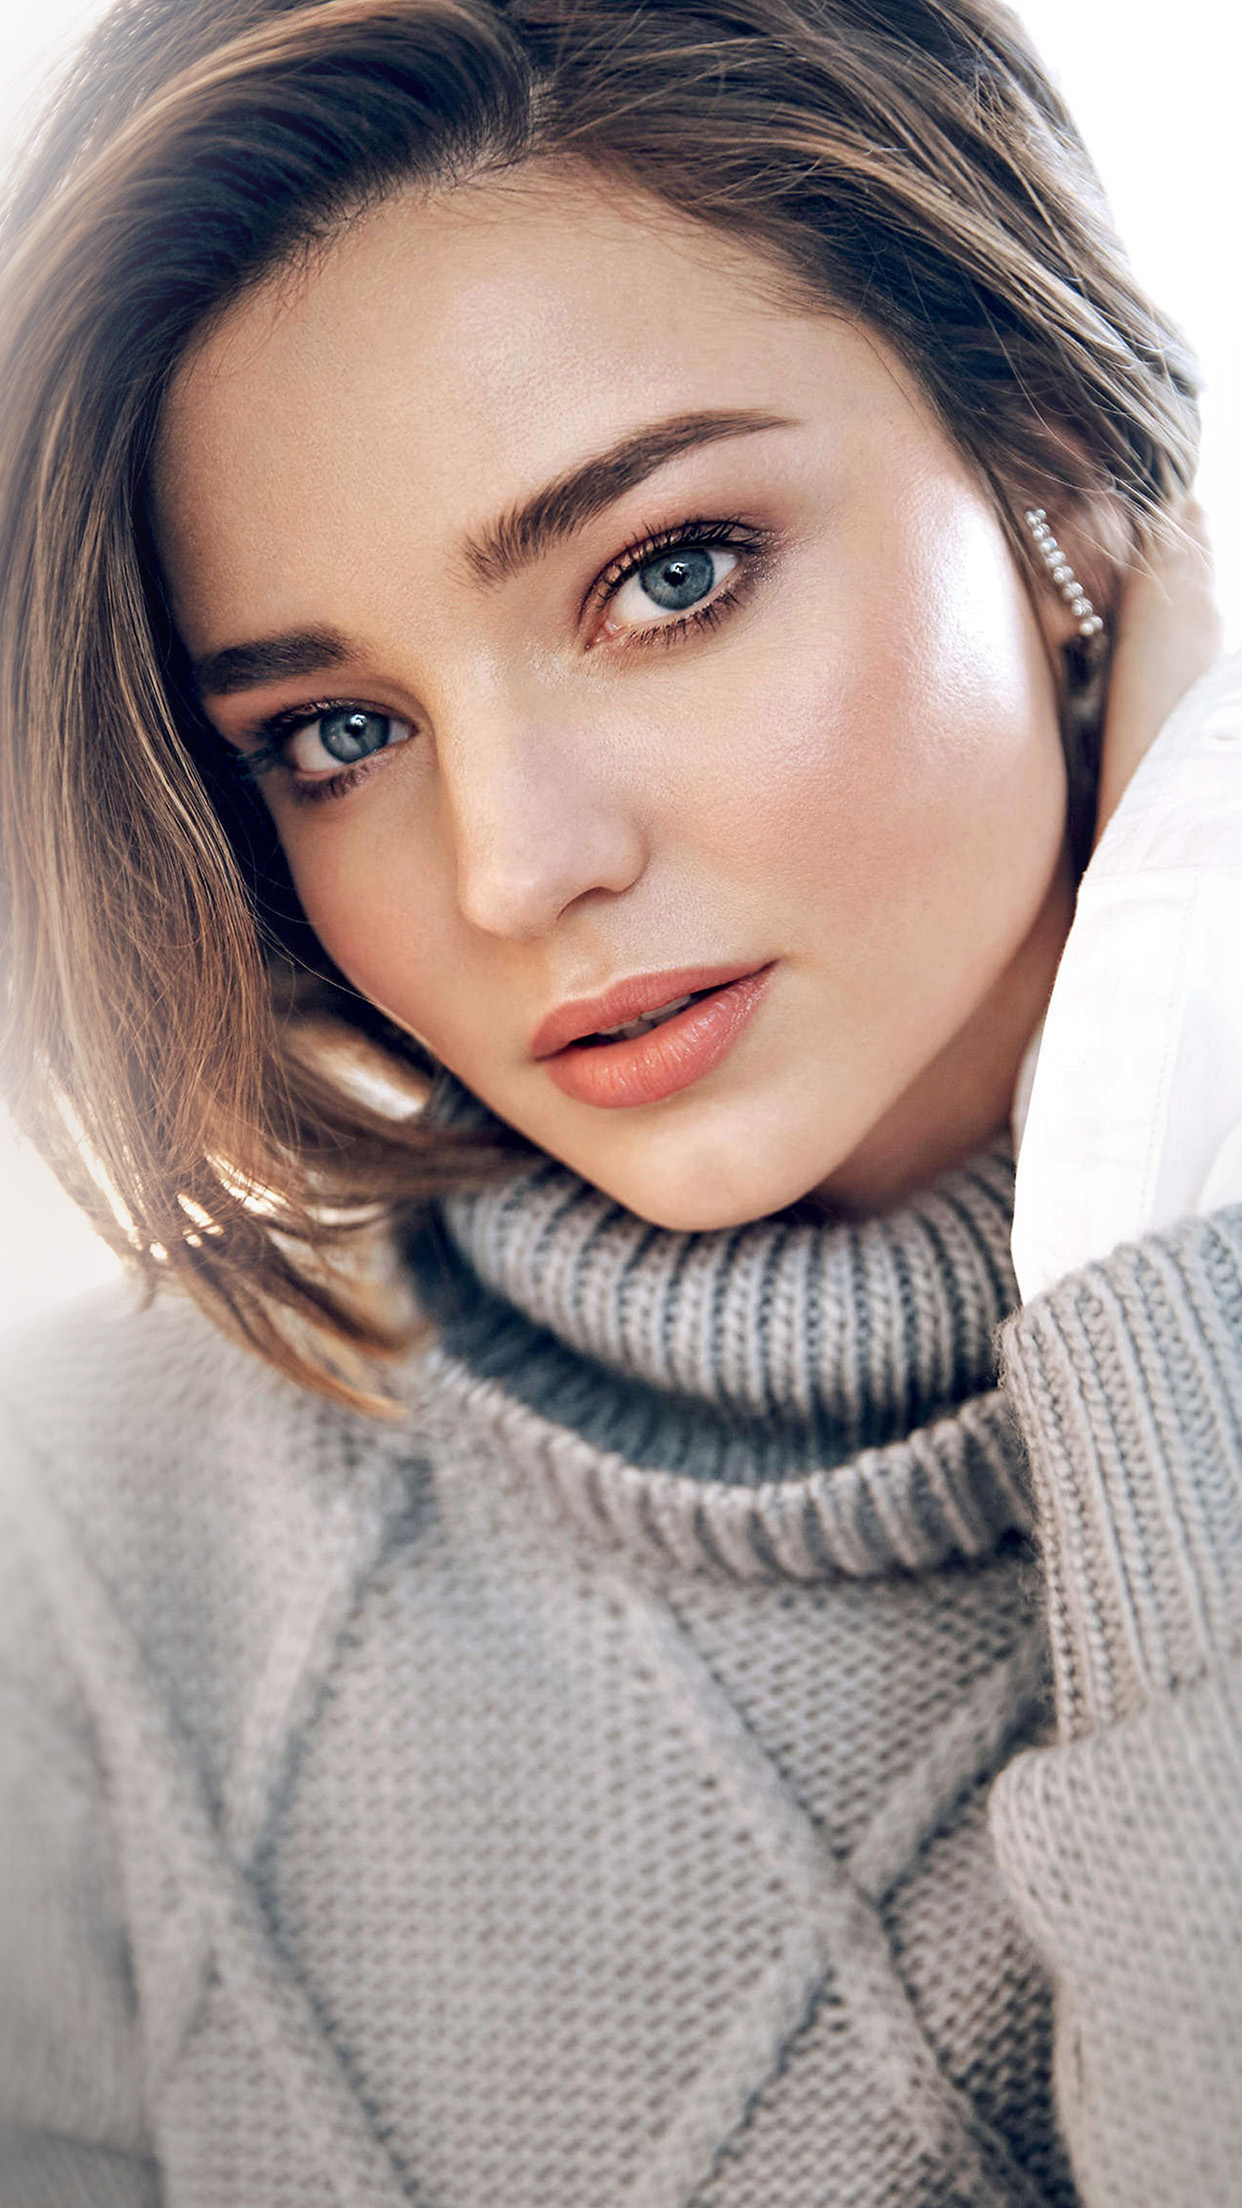 Cute Face Girl Wallpaper Hd Hq89 Miranda Kerr Girl Model Face Wallpaper